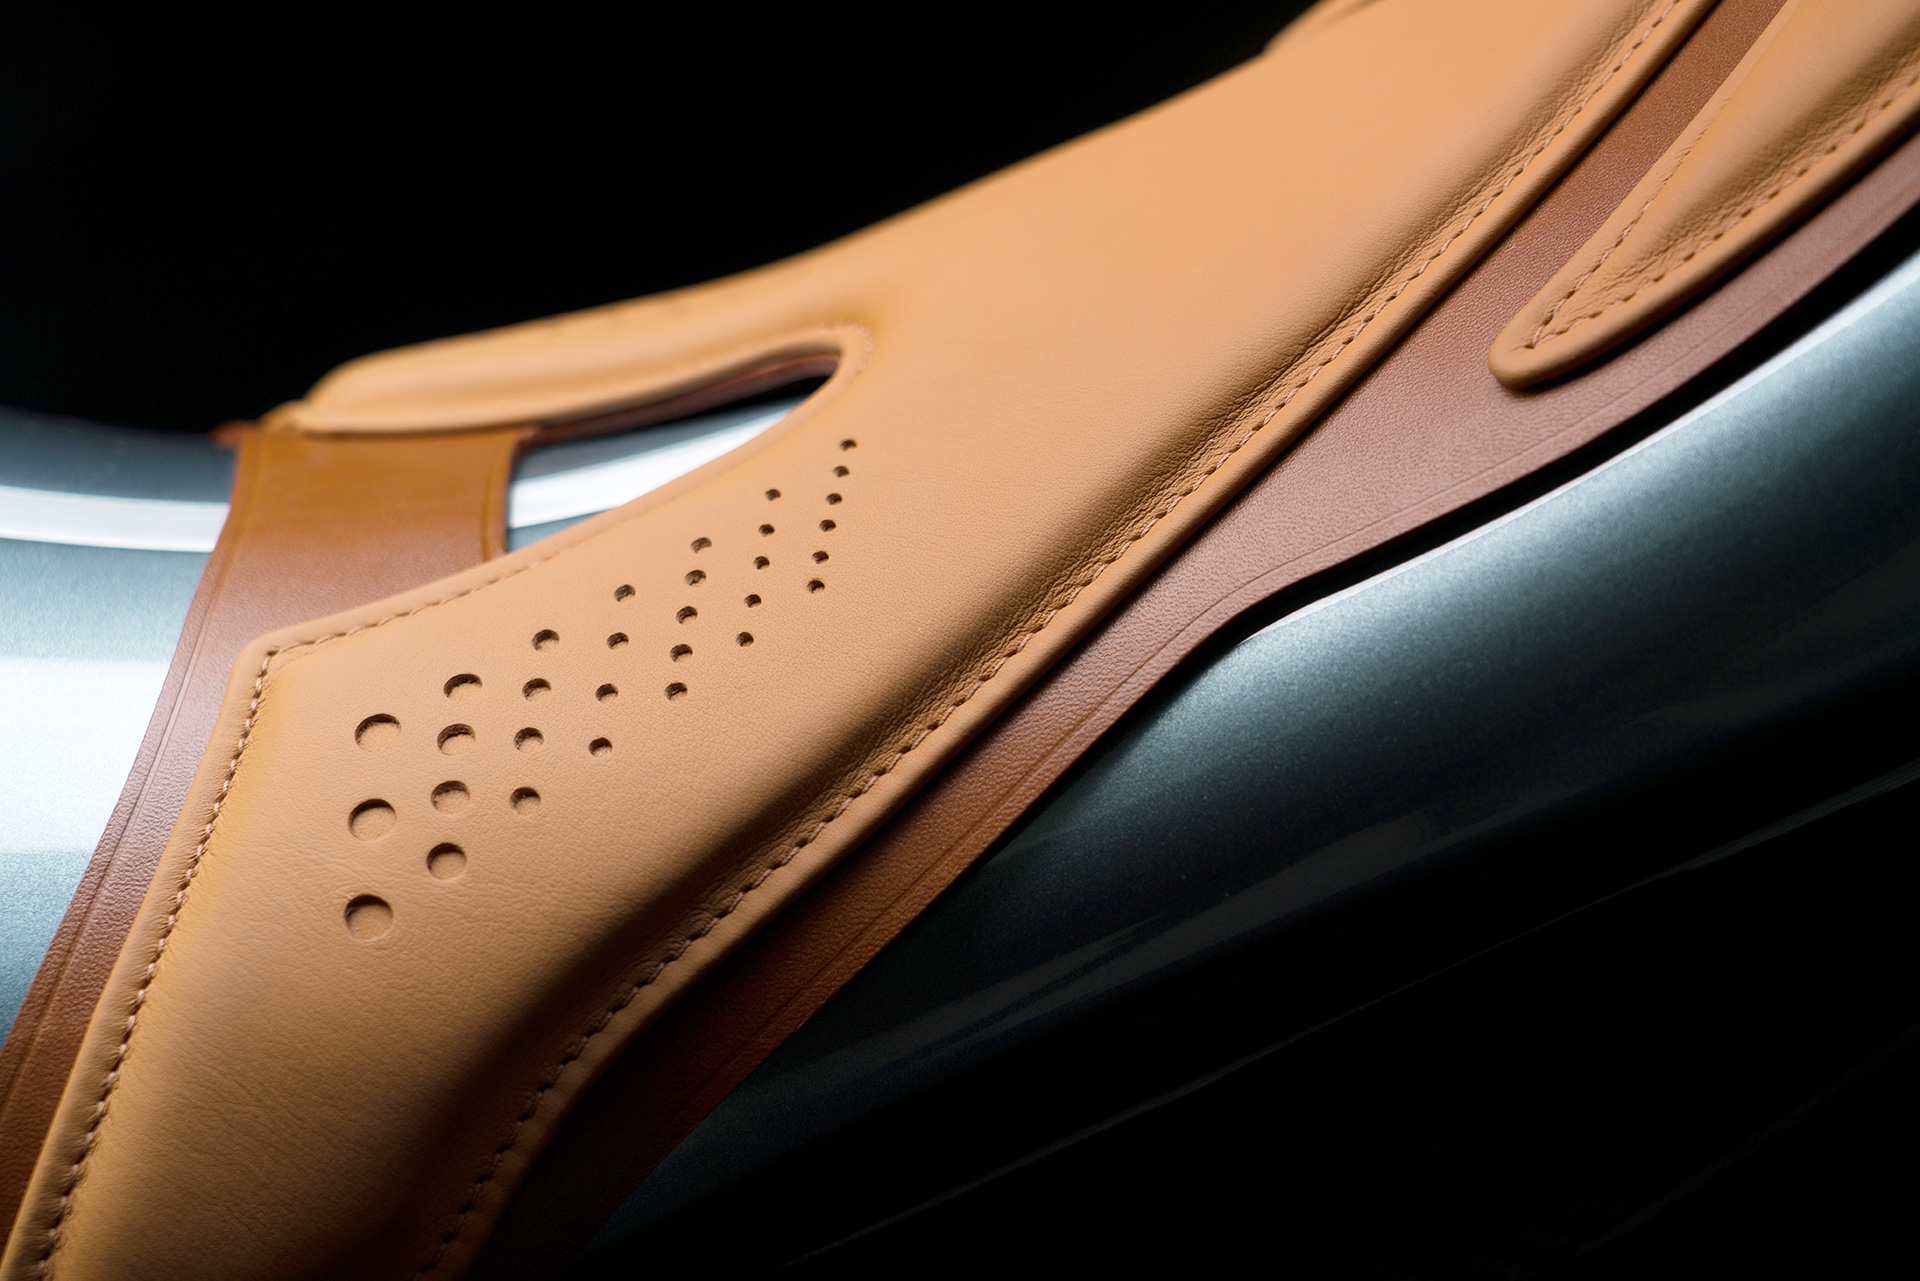 The Oxford Tan leather pads of the hand-stitched saddle combines old techniques and modern technology | AMB 001 | Aston Martin | Brough Superior | STIRworld